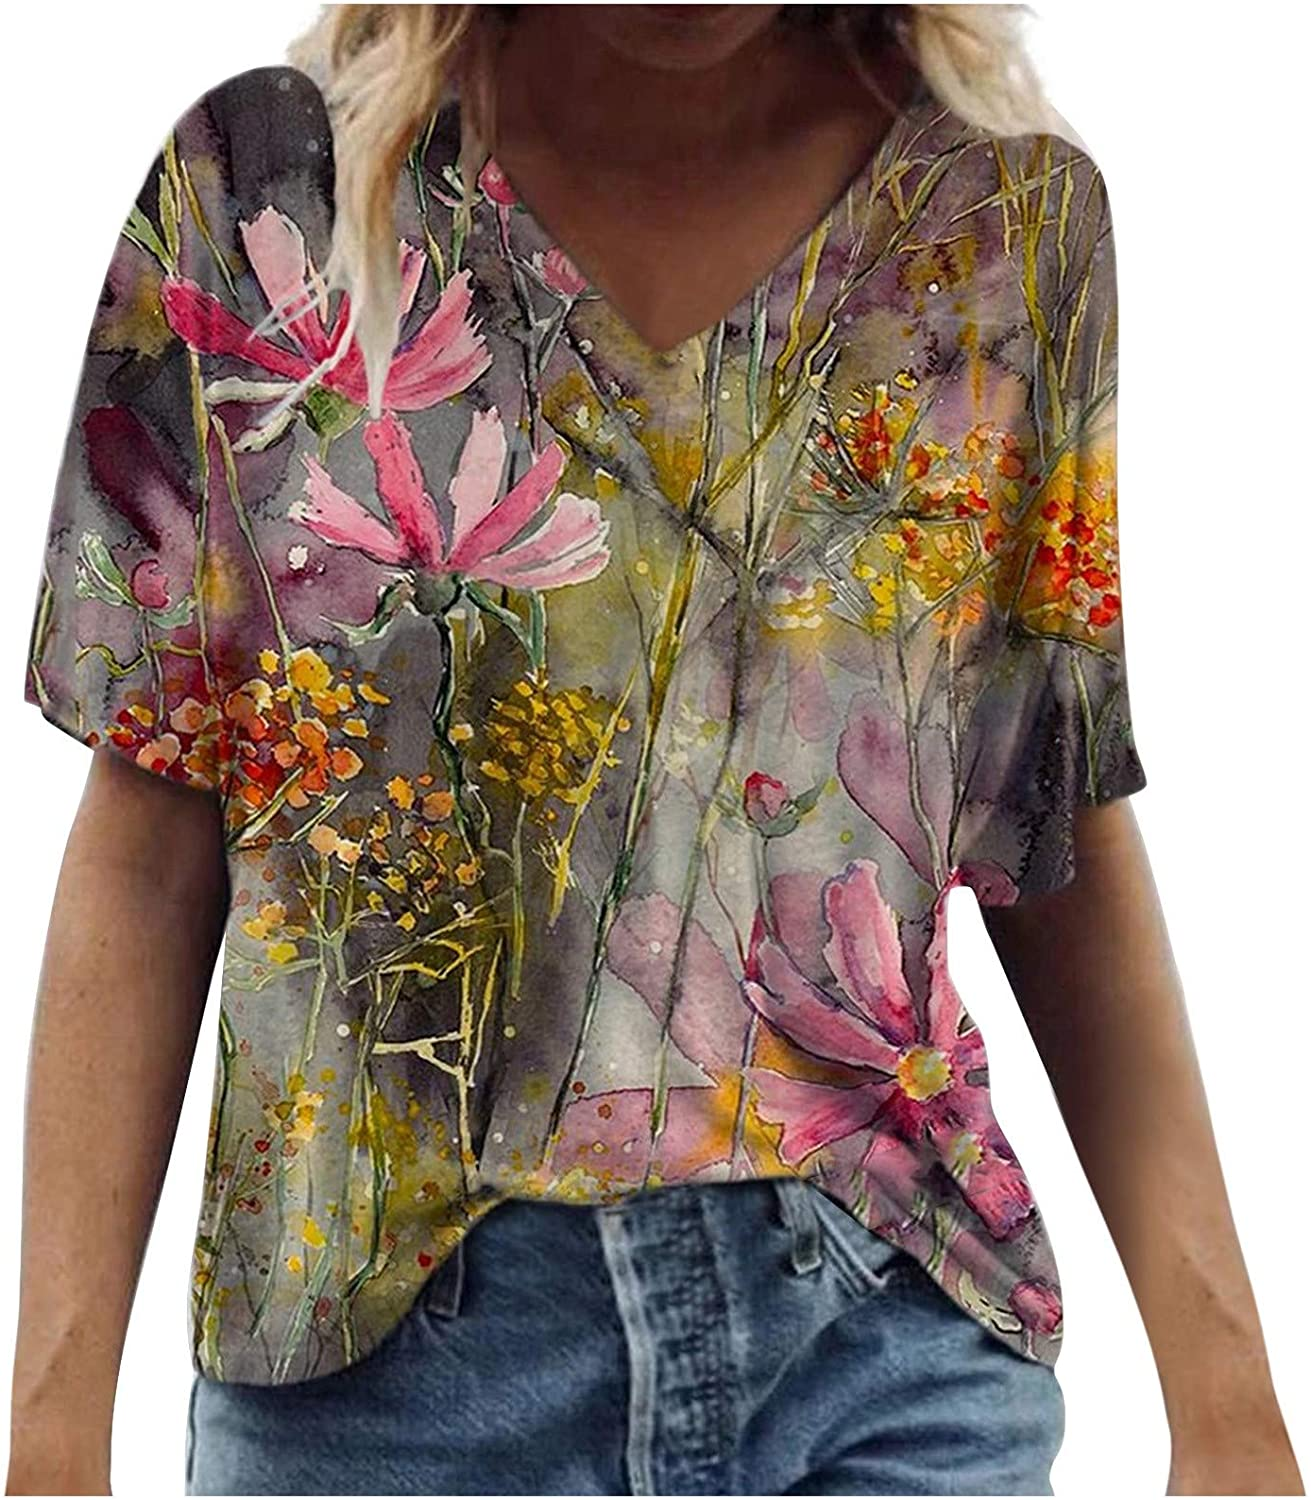 Floral Graphic Tie Die Tees for Women V-Neck Tops Short Sleeve T-Shirts Casual Blouses